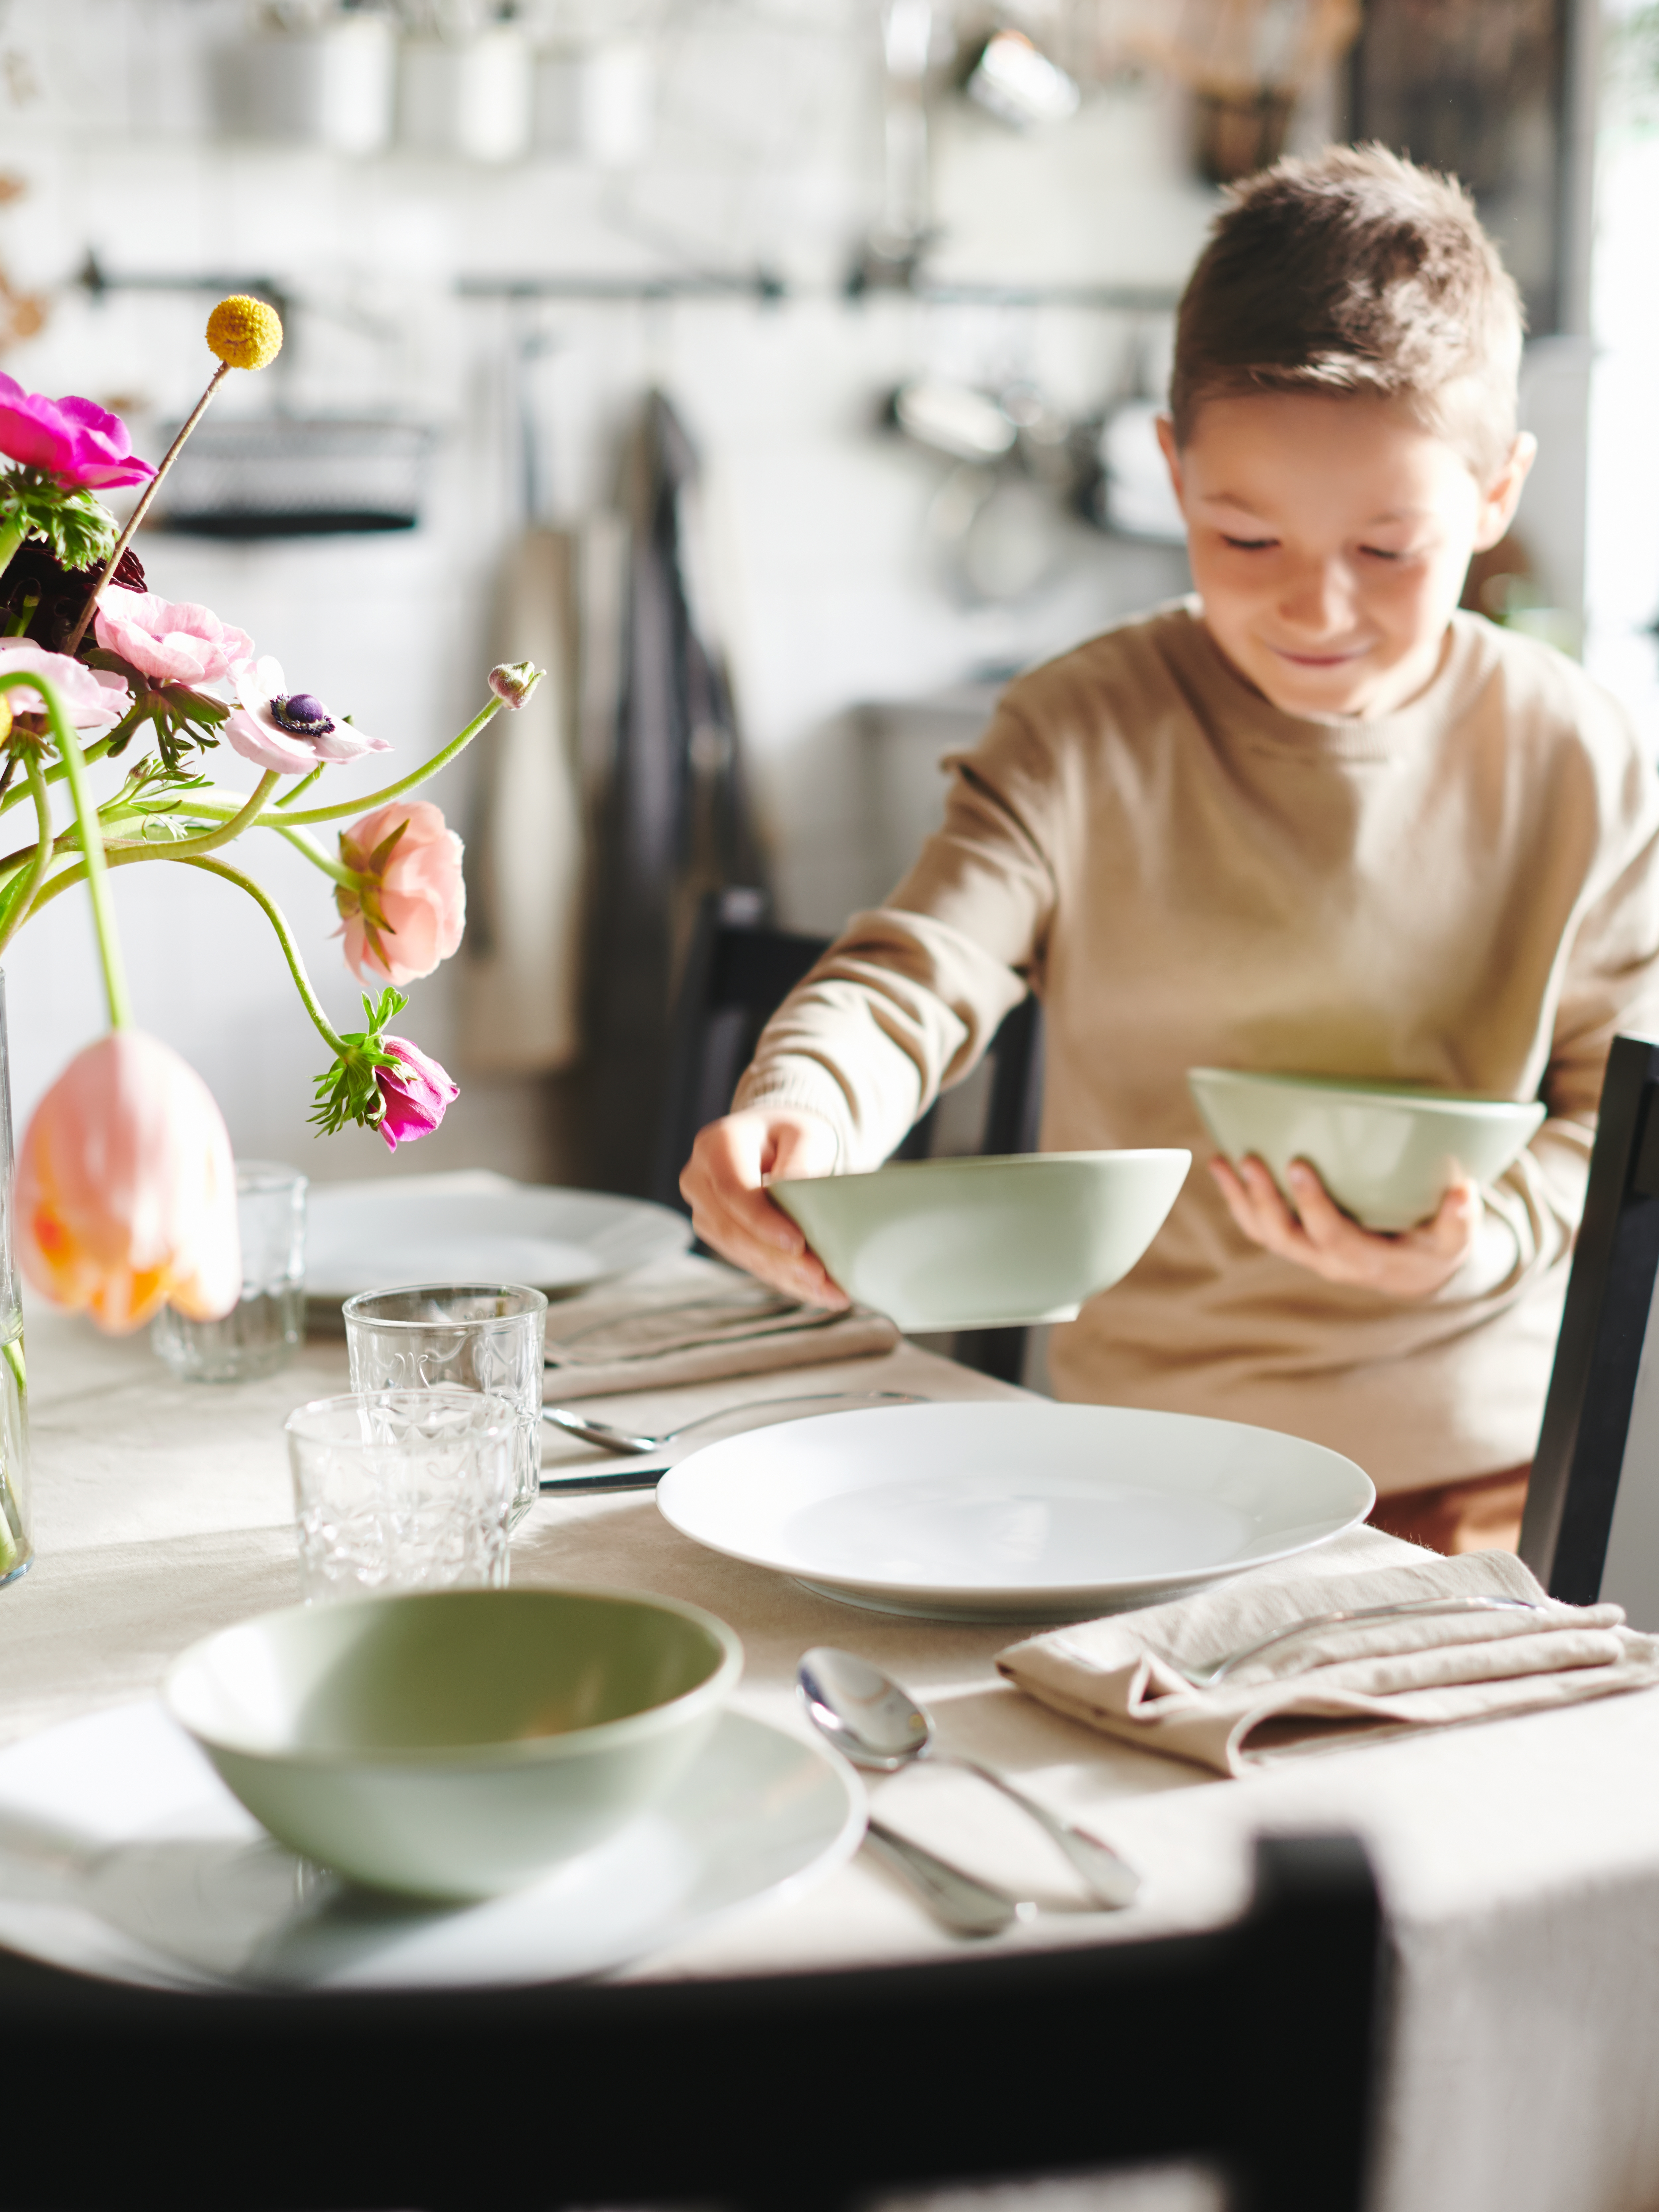 A sunlit table with a tablecloth and flowers is being set by a boy distributing matt-green FÄRGKLAR bowls onto white plates.